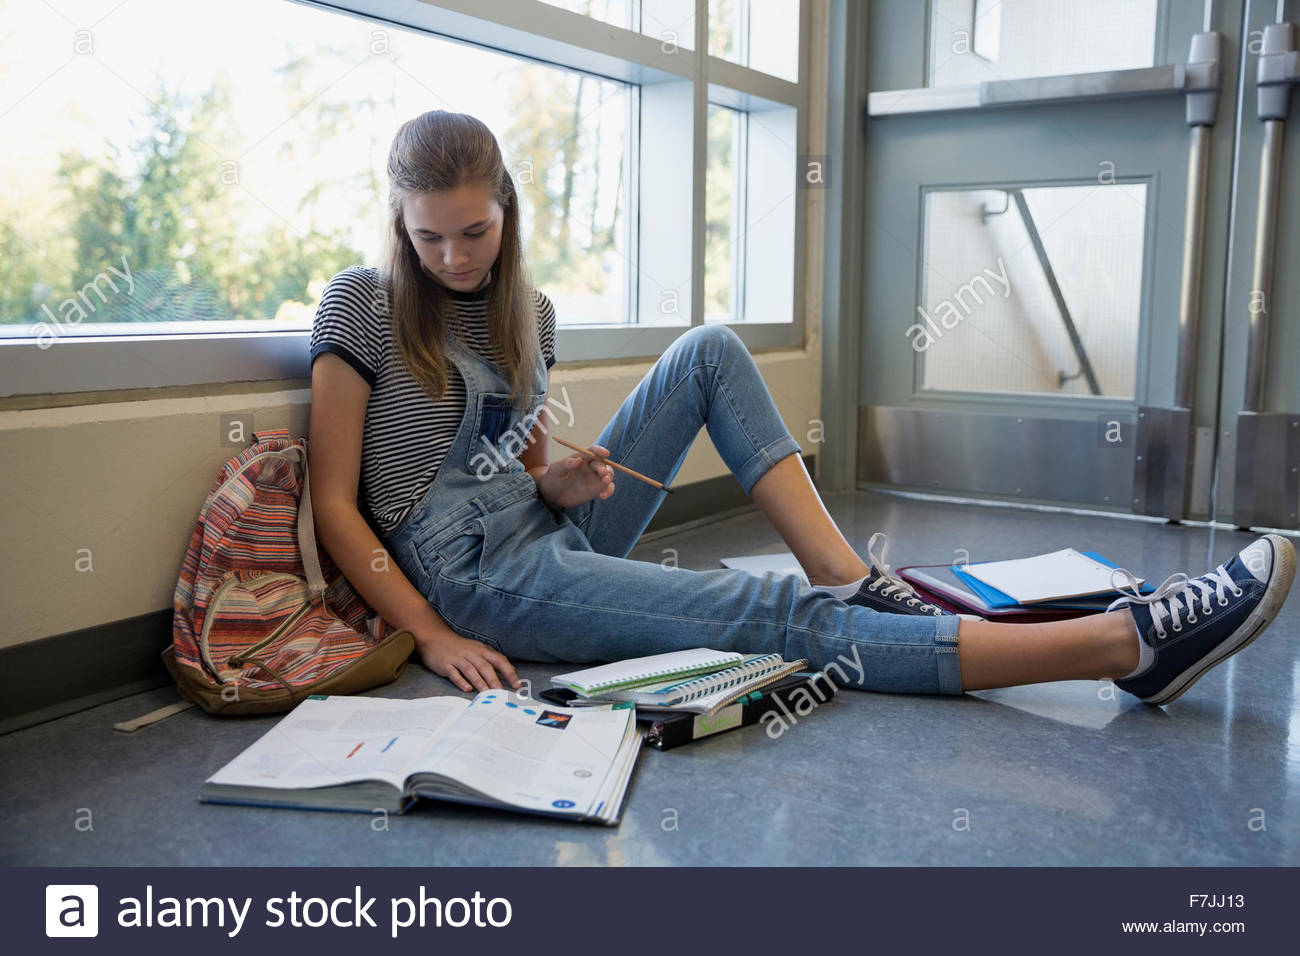 High school student with textbook studying on floor - Stock Image